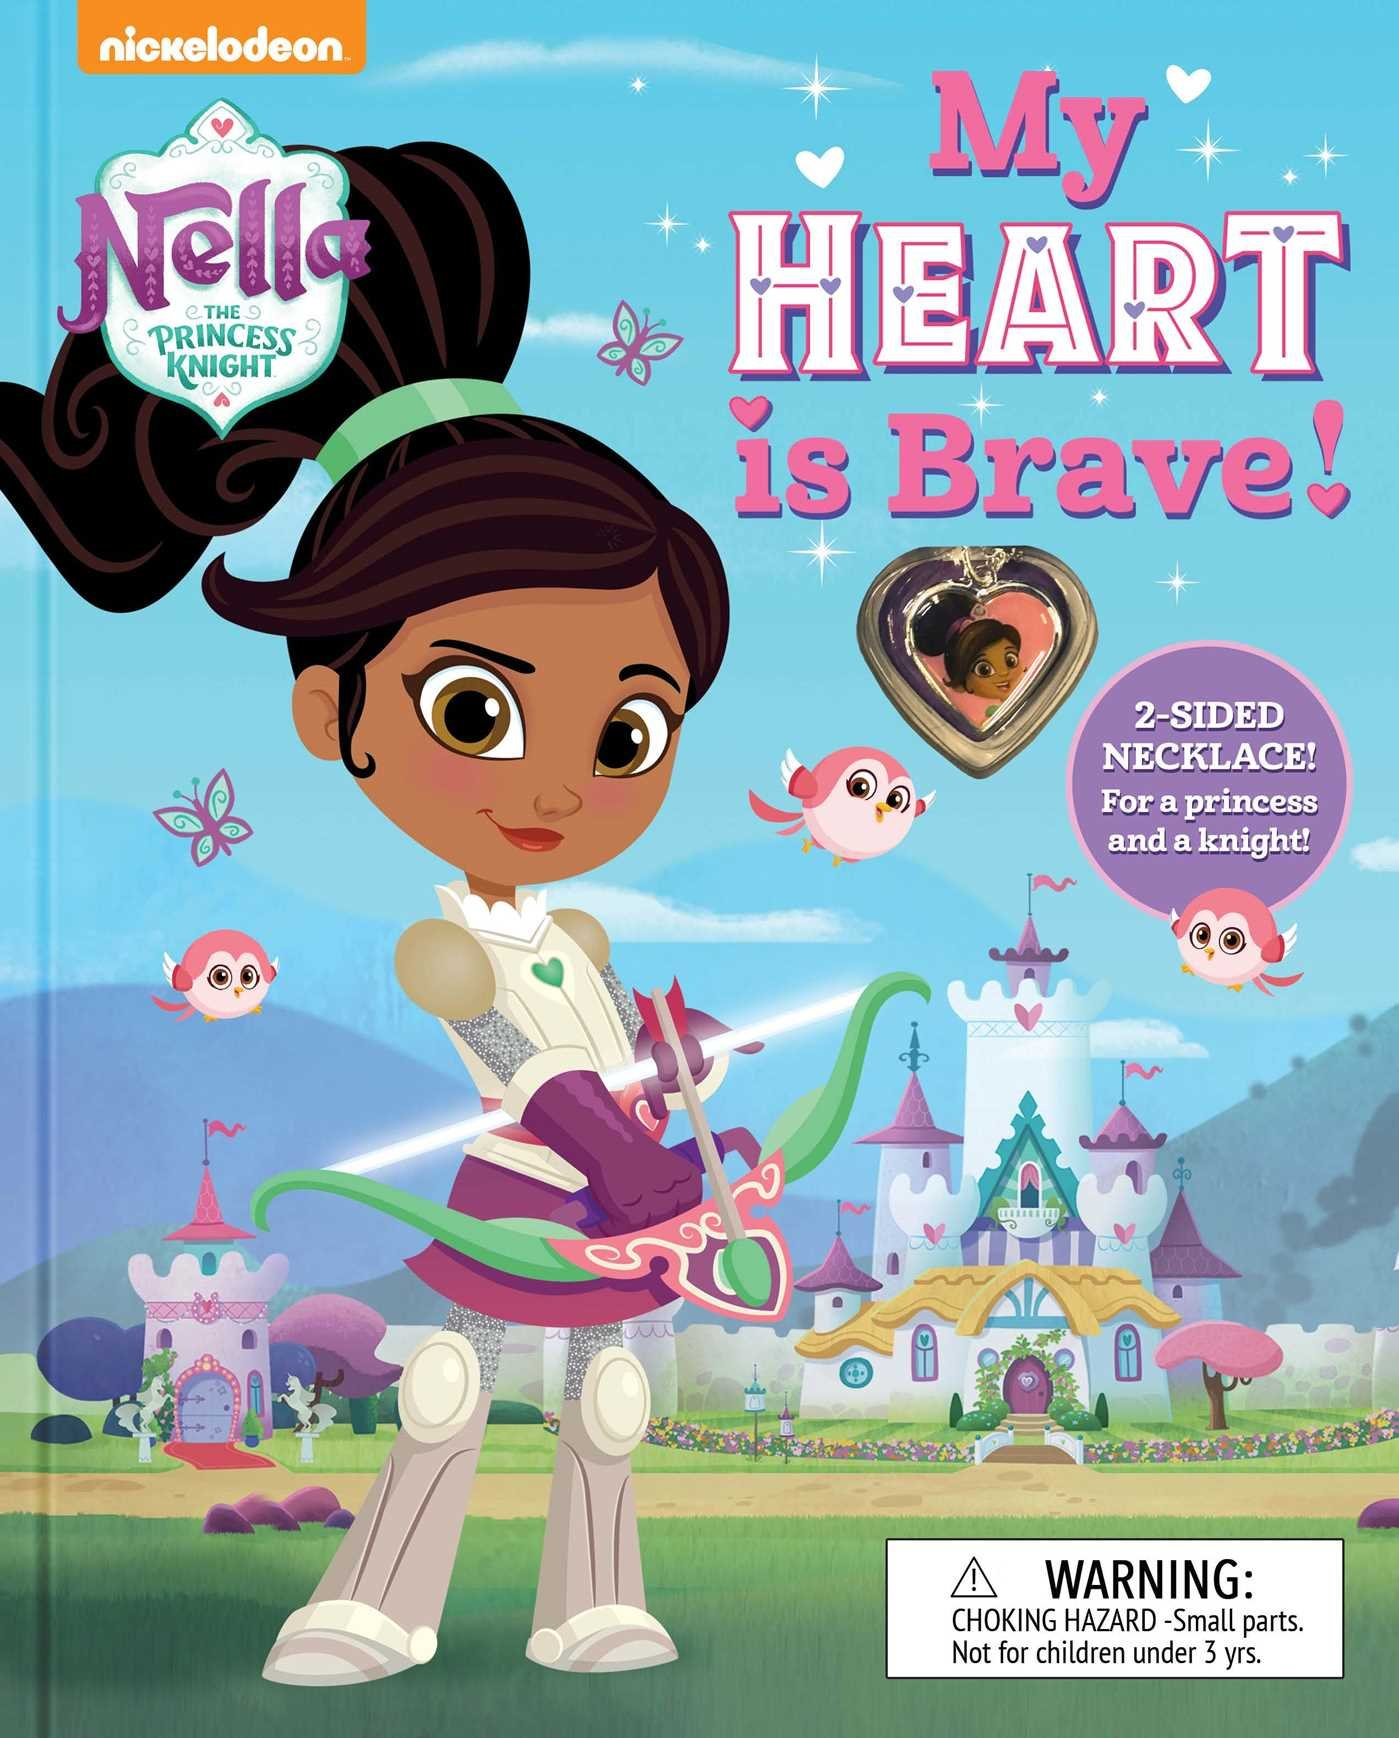 Nella the Princess Knight: My Heart is Brave (BOOK AND JEWELRY)